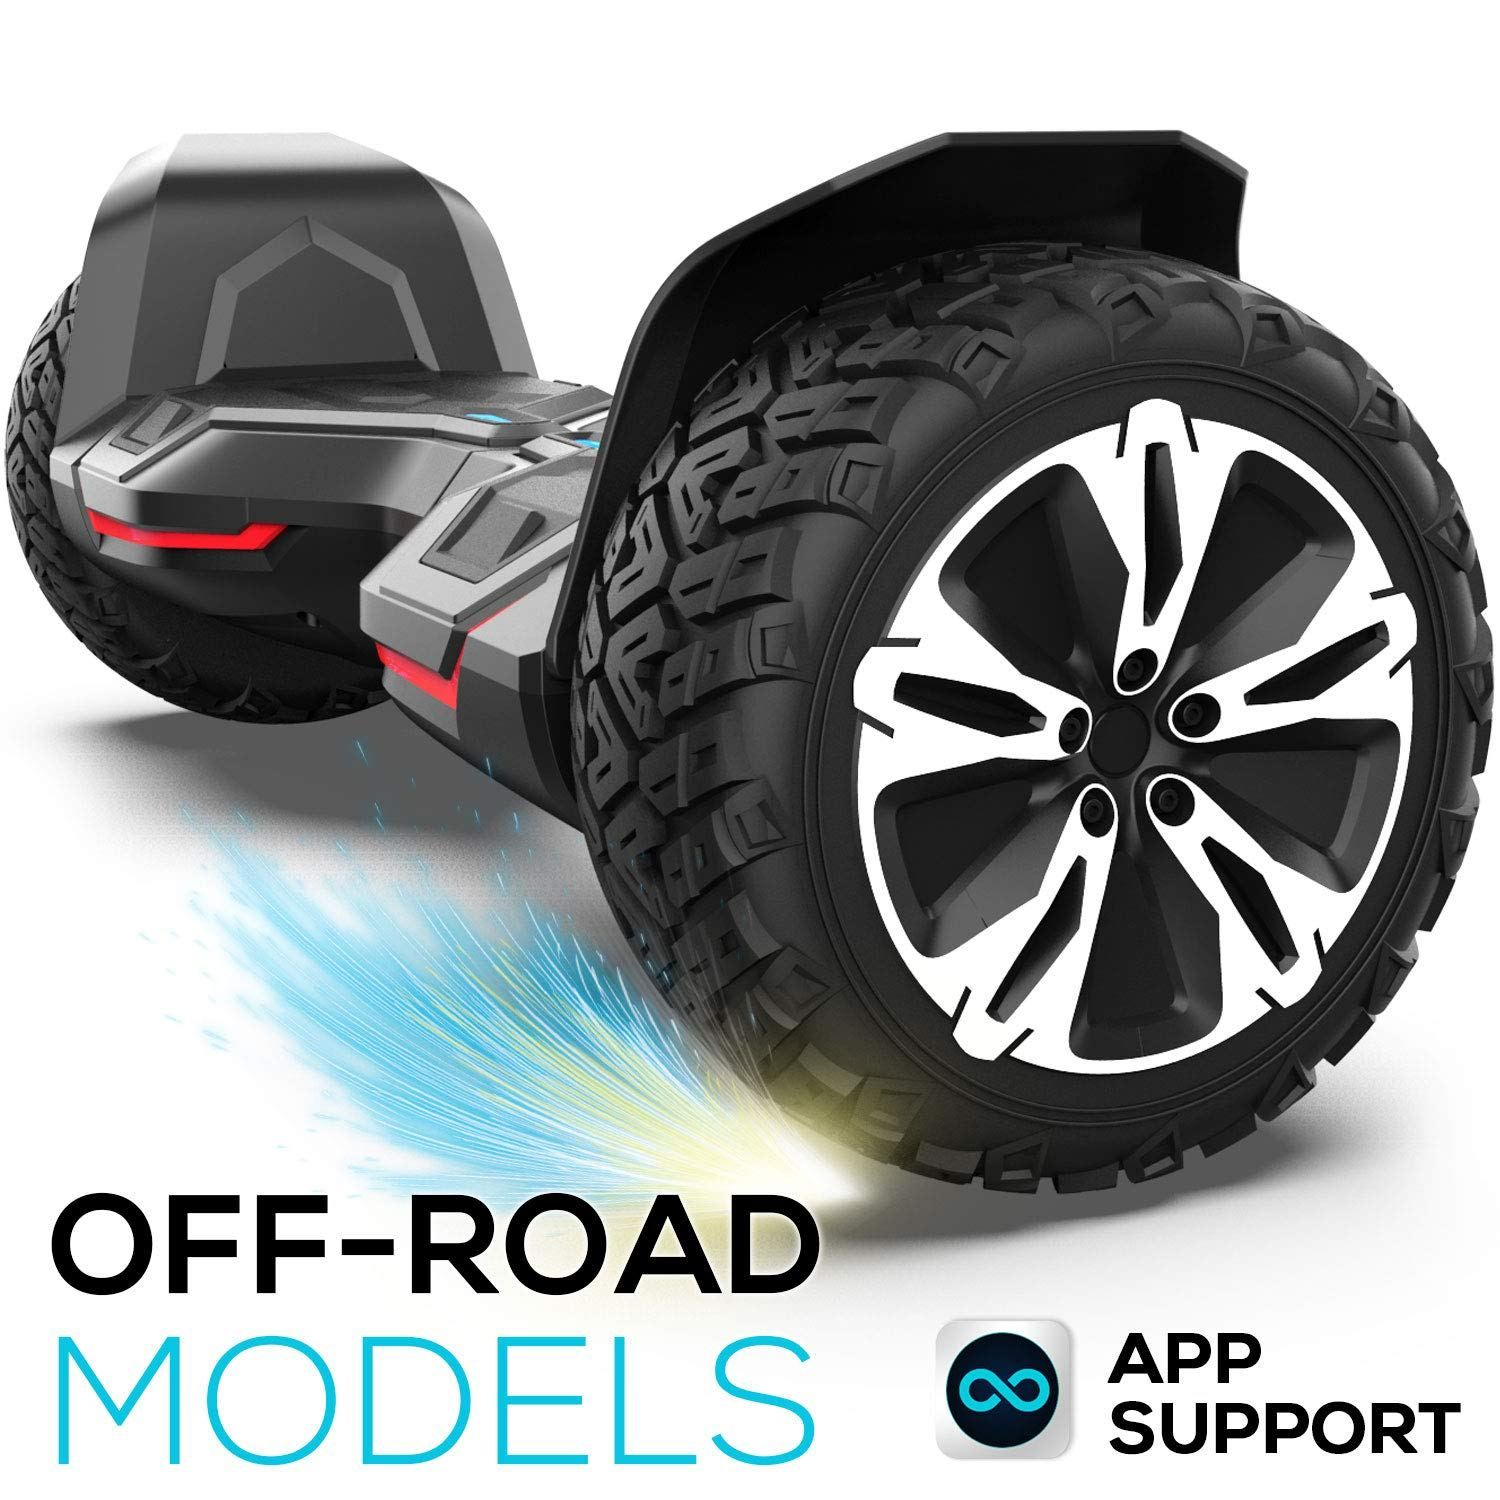 Hoverboard Off Road All Terrain Hoverboard with 8.5 inch